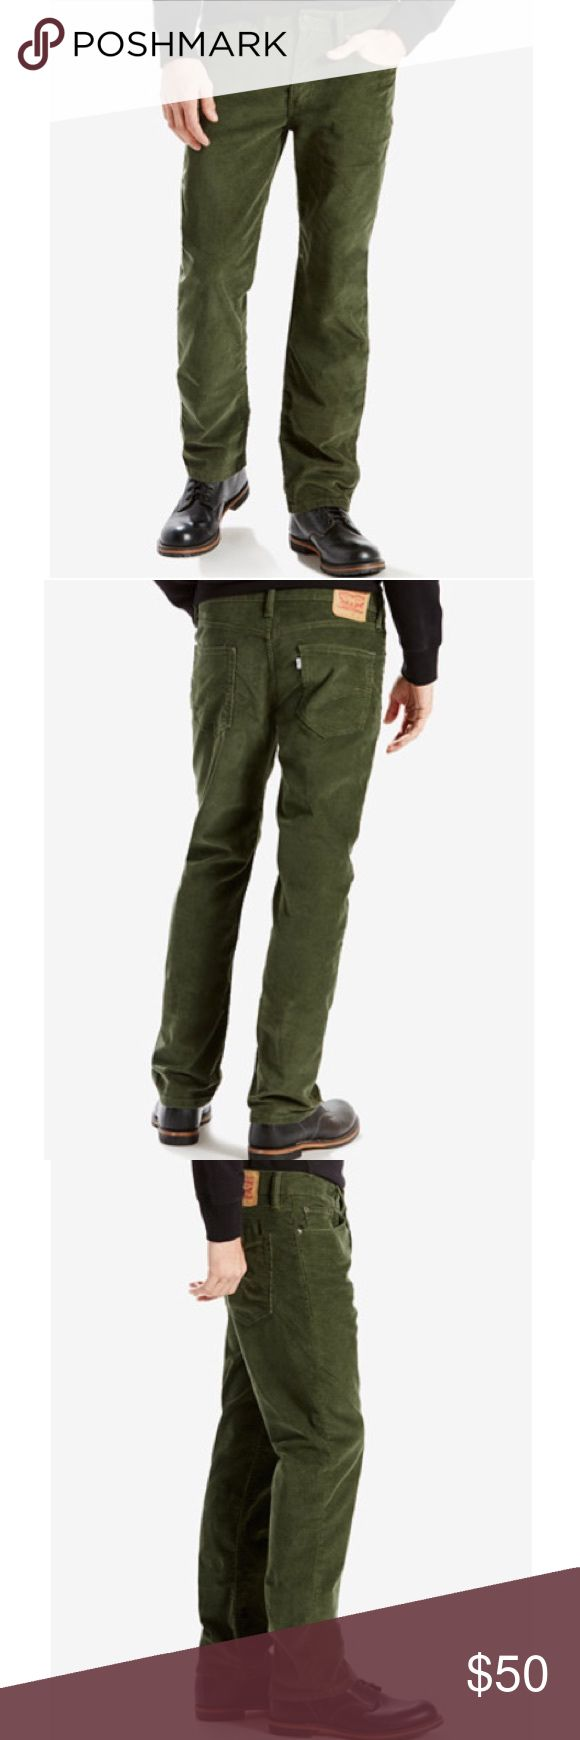 NWT - Levi's 514 Straight Fit Corduroys 34x32 514 Straight Fit Corduroys are a classic. Cut to sit low on the waist, generous through the seat and thigh, with a straight-leg opening from knee to ankle. Best for athletic to medium builds. 34x32. Olive green. Never worn - new without tags. Levi's Pants Corduroy